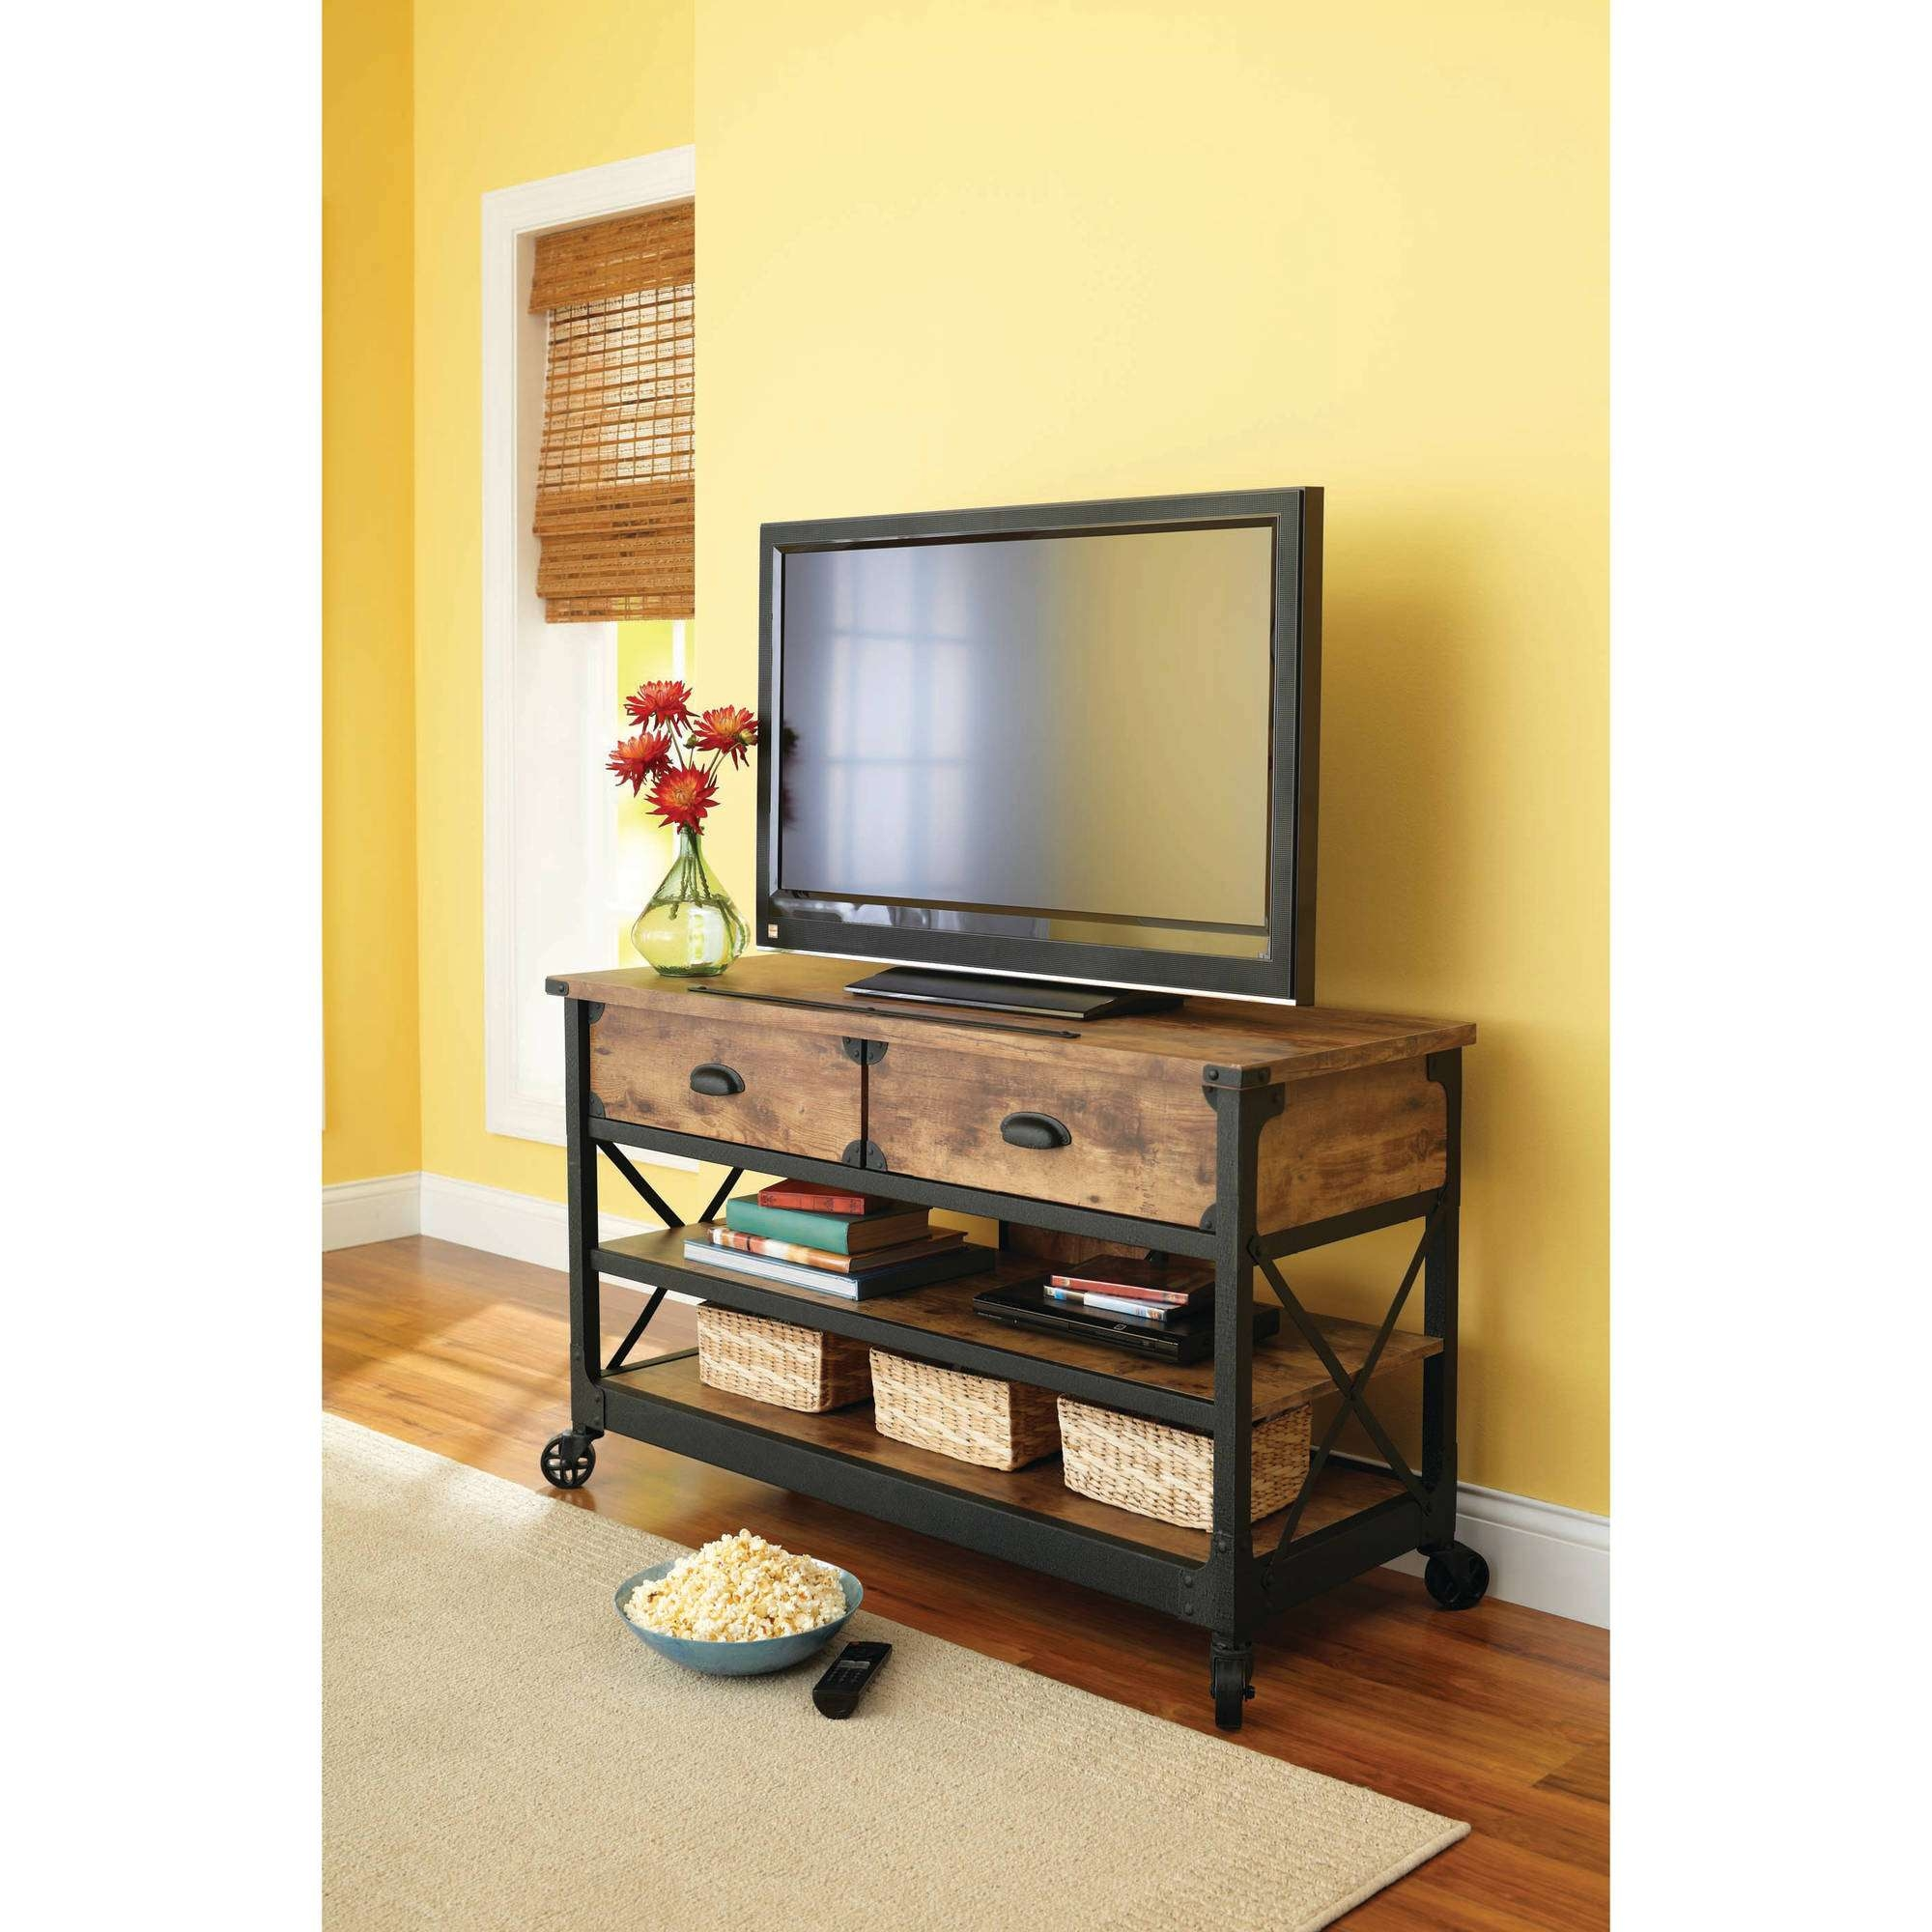 Better Homes And Gardens Rustic Country Living Room Set – Walmart Within Rustic Looking Tv Stands (View 13 of 20)